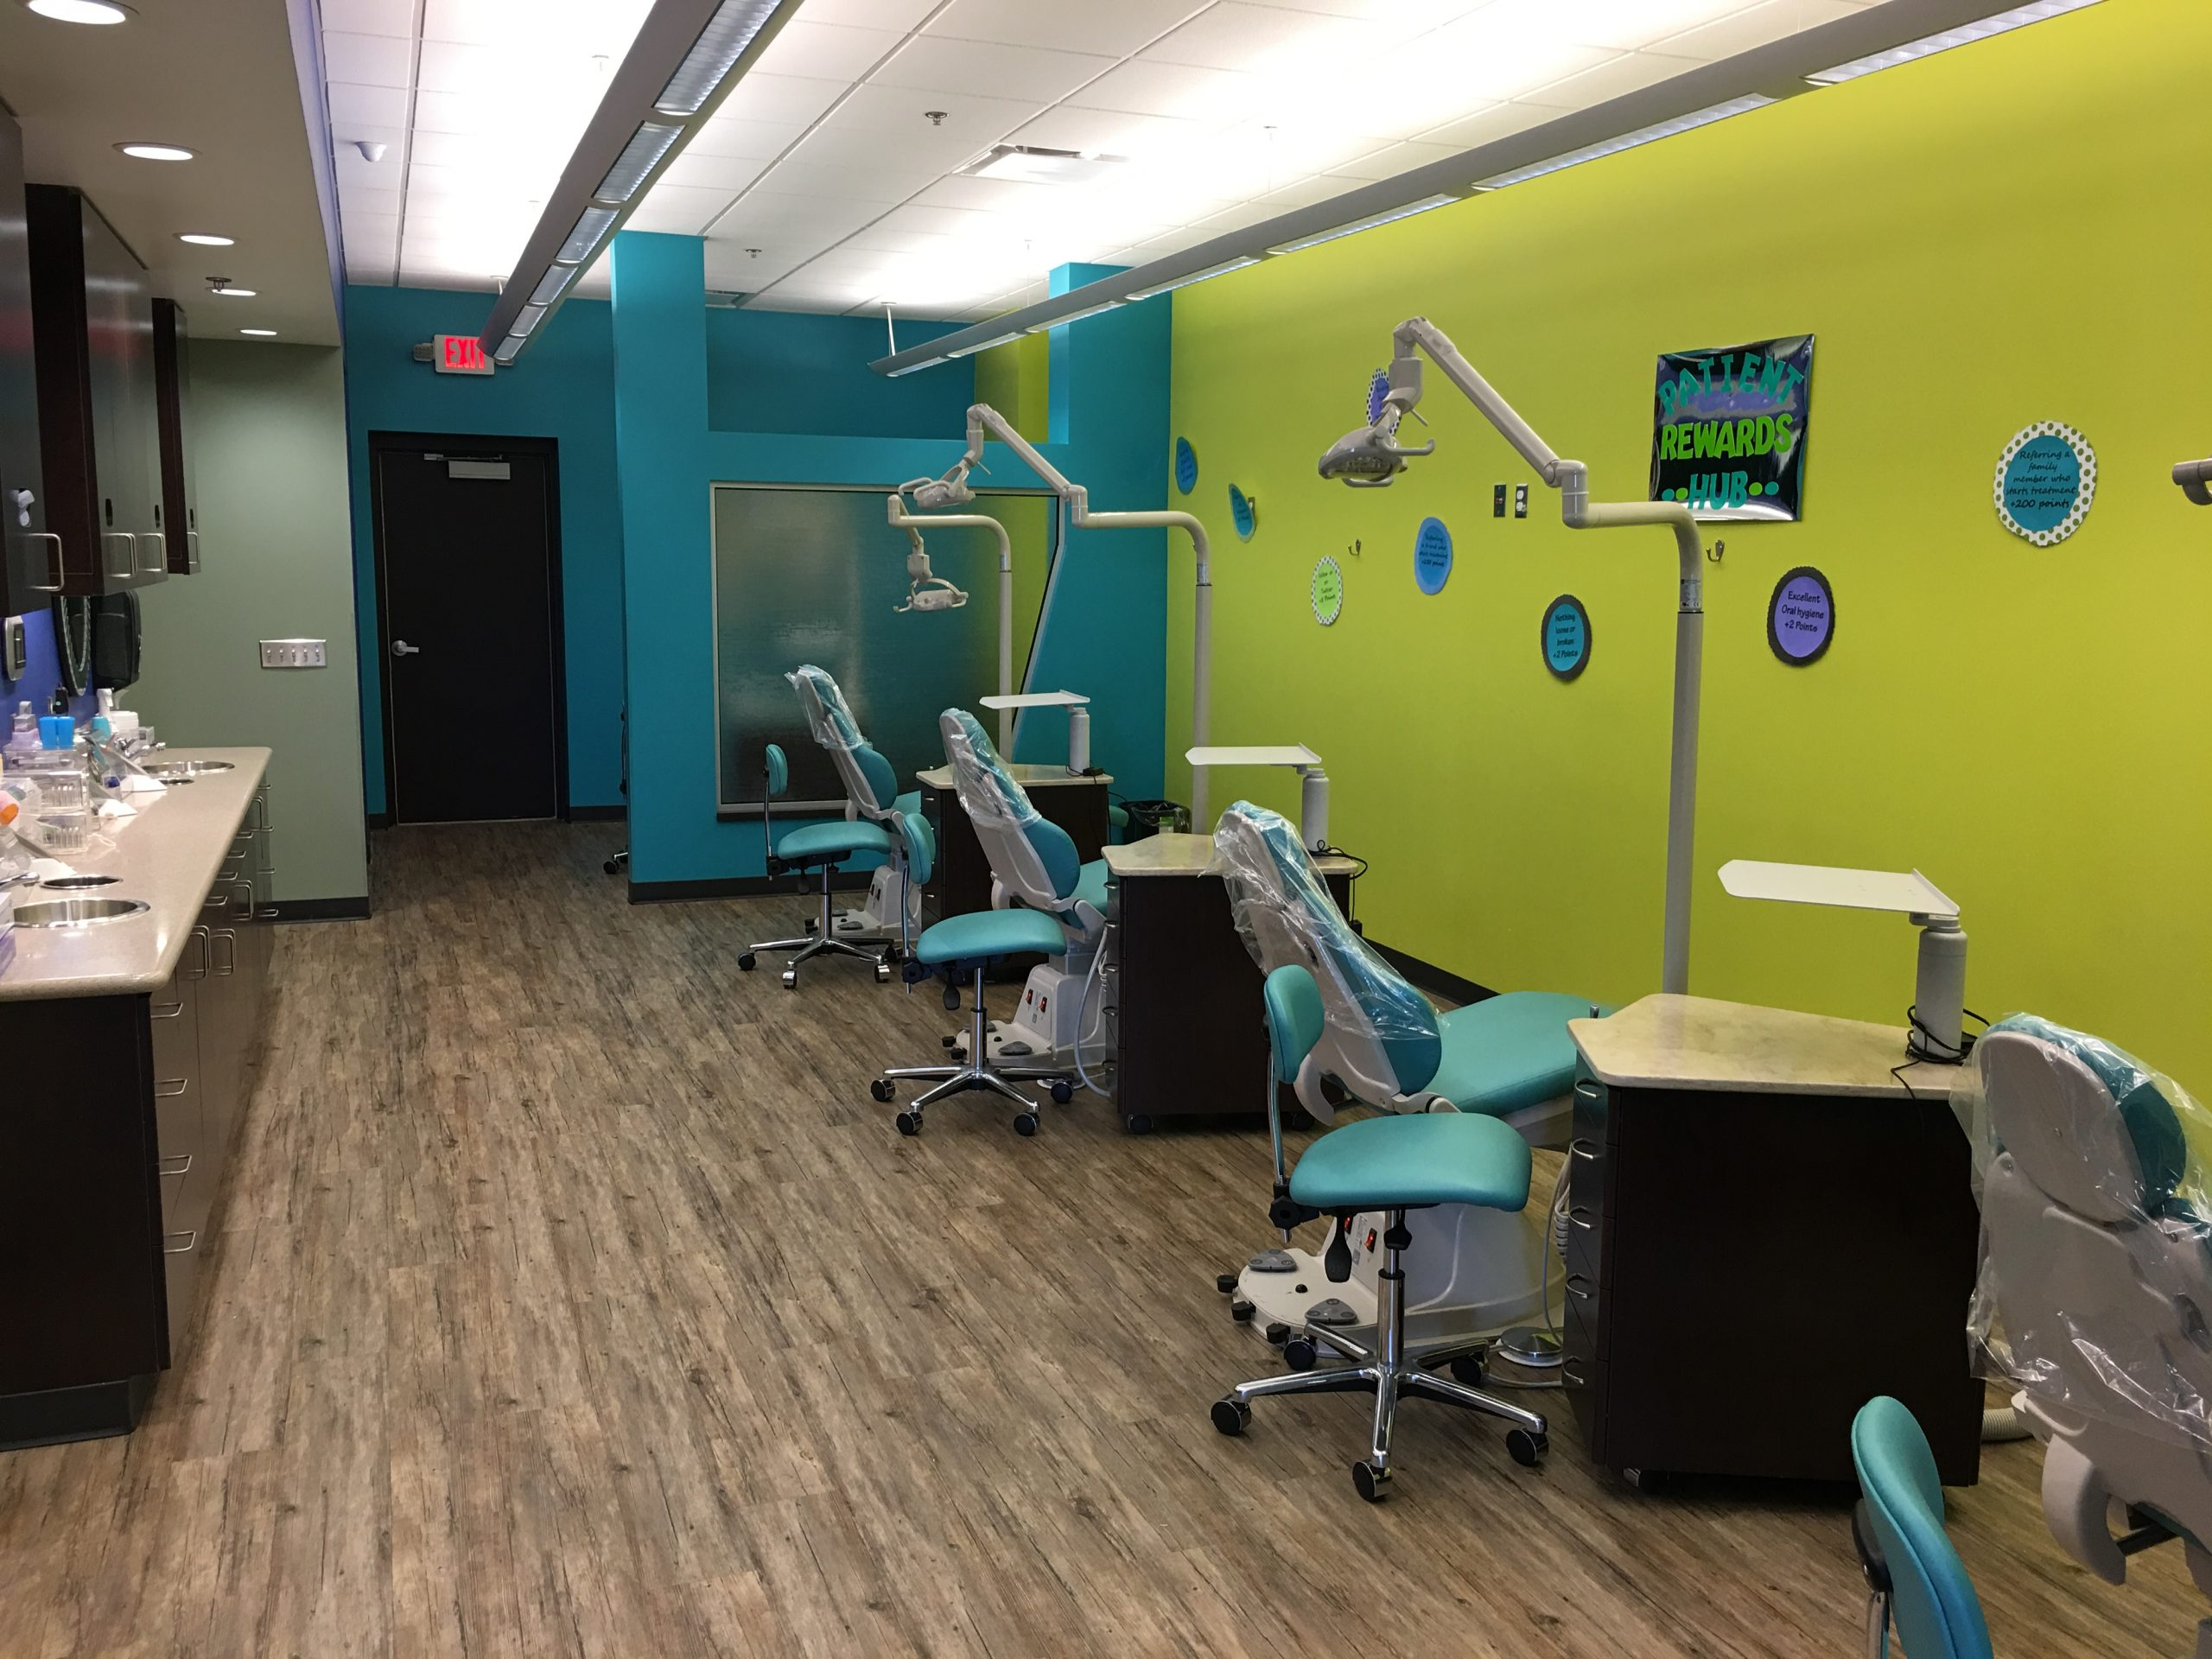 Open dental treatment rooms